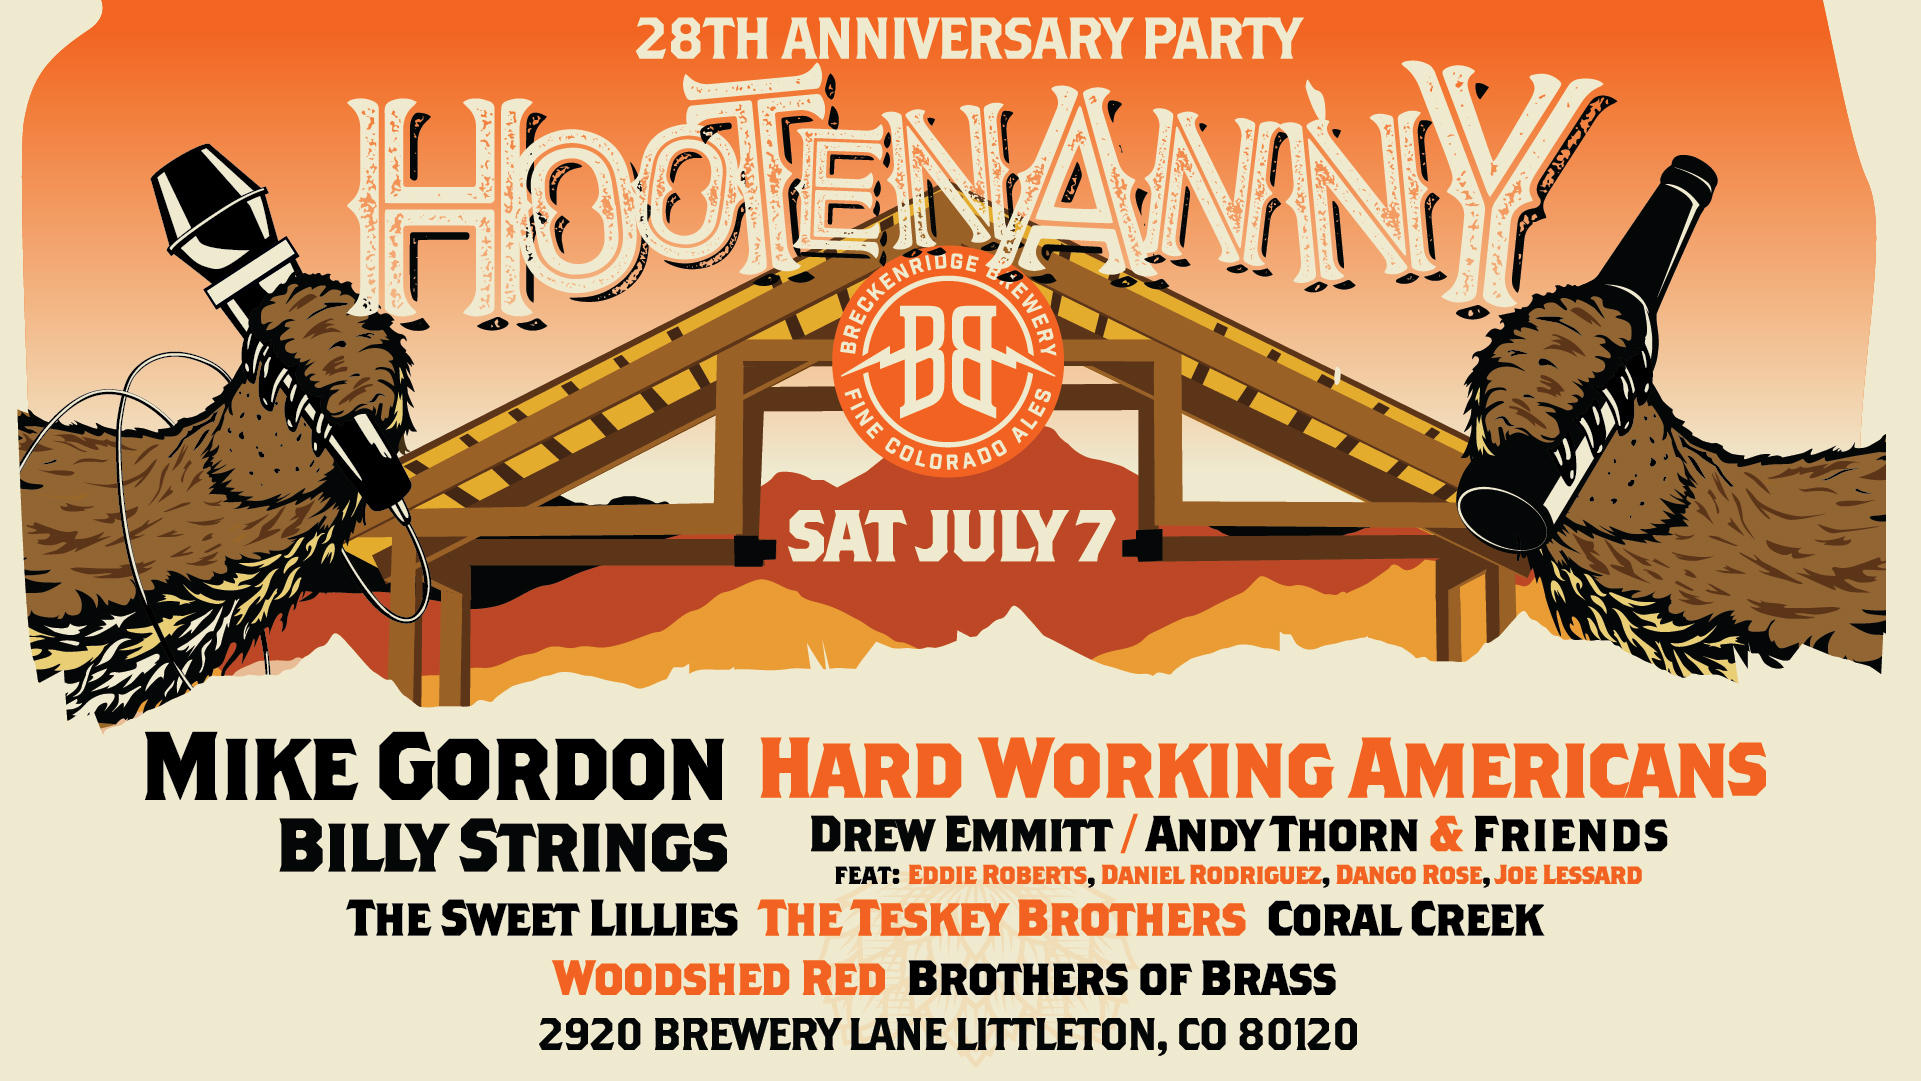 Hootenanny 2018 ft. Mike Gordon, Hard Working Americans, Billy Strings, and More